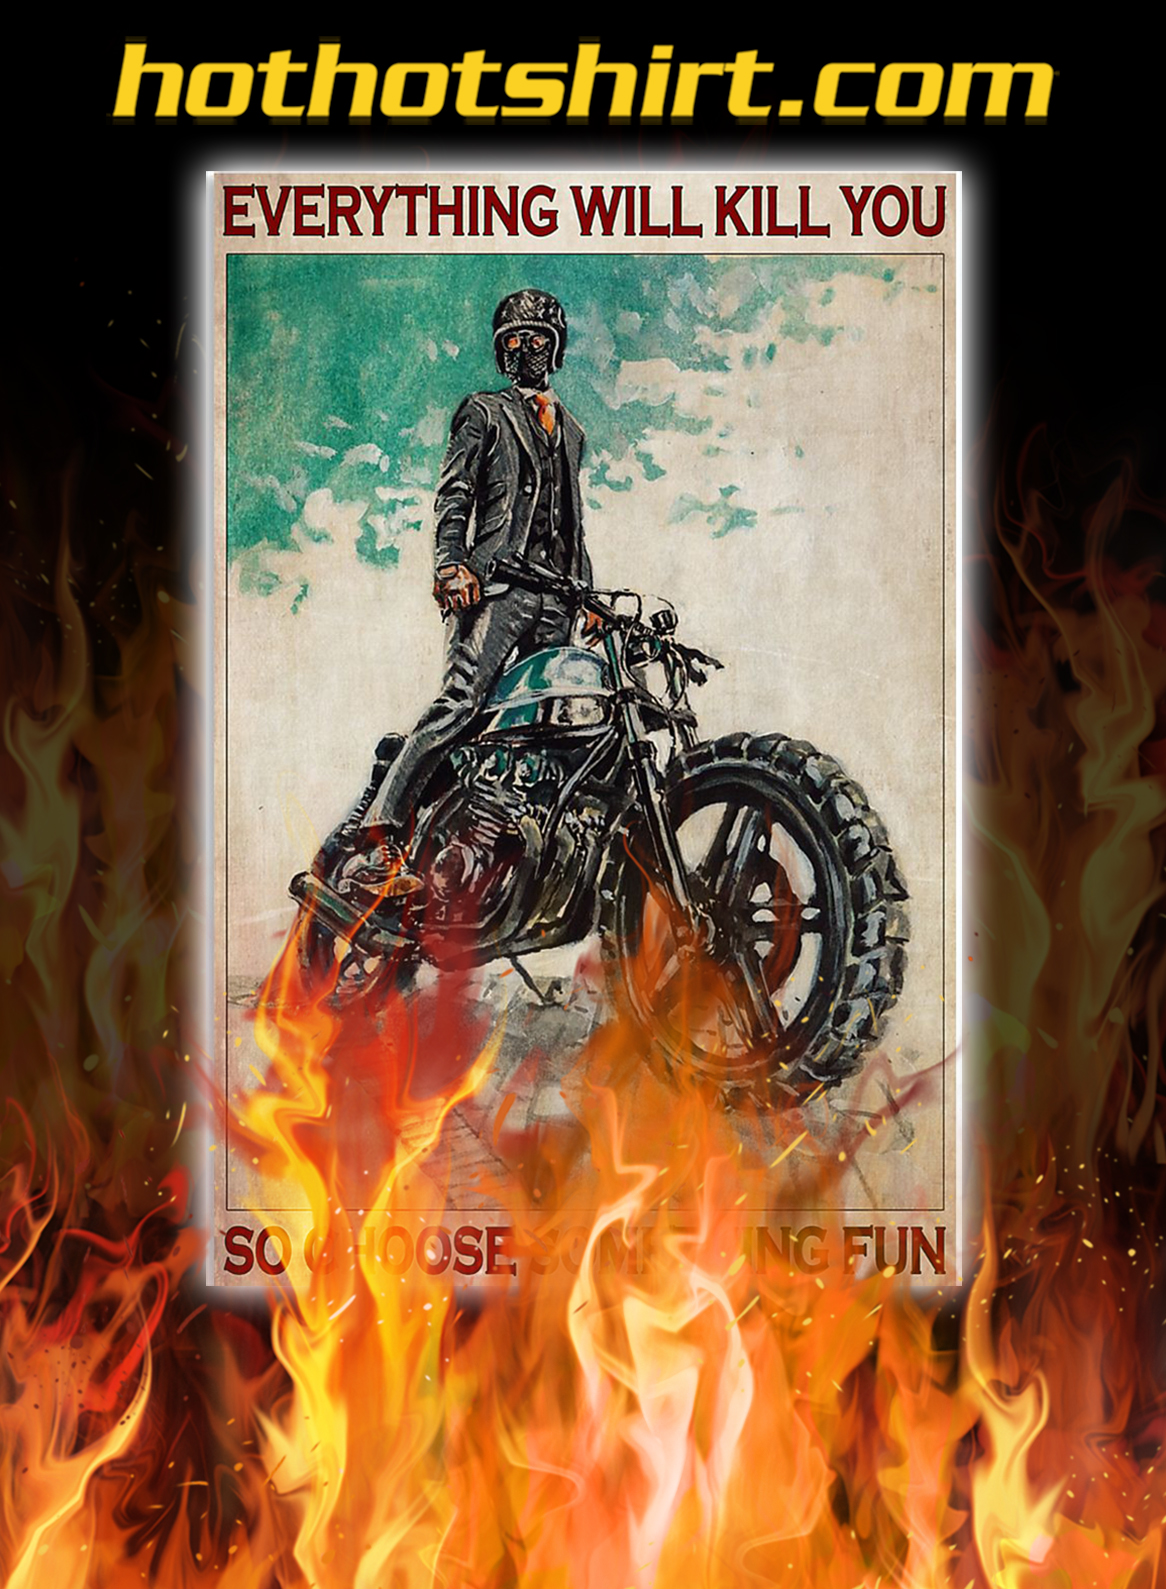 Motorcycle everything will kill you so choose something fun poster - A2